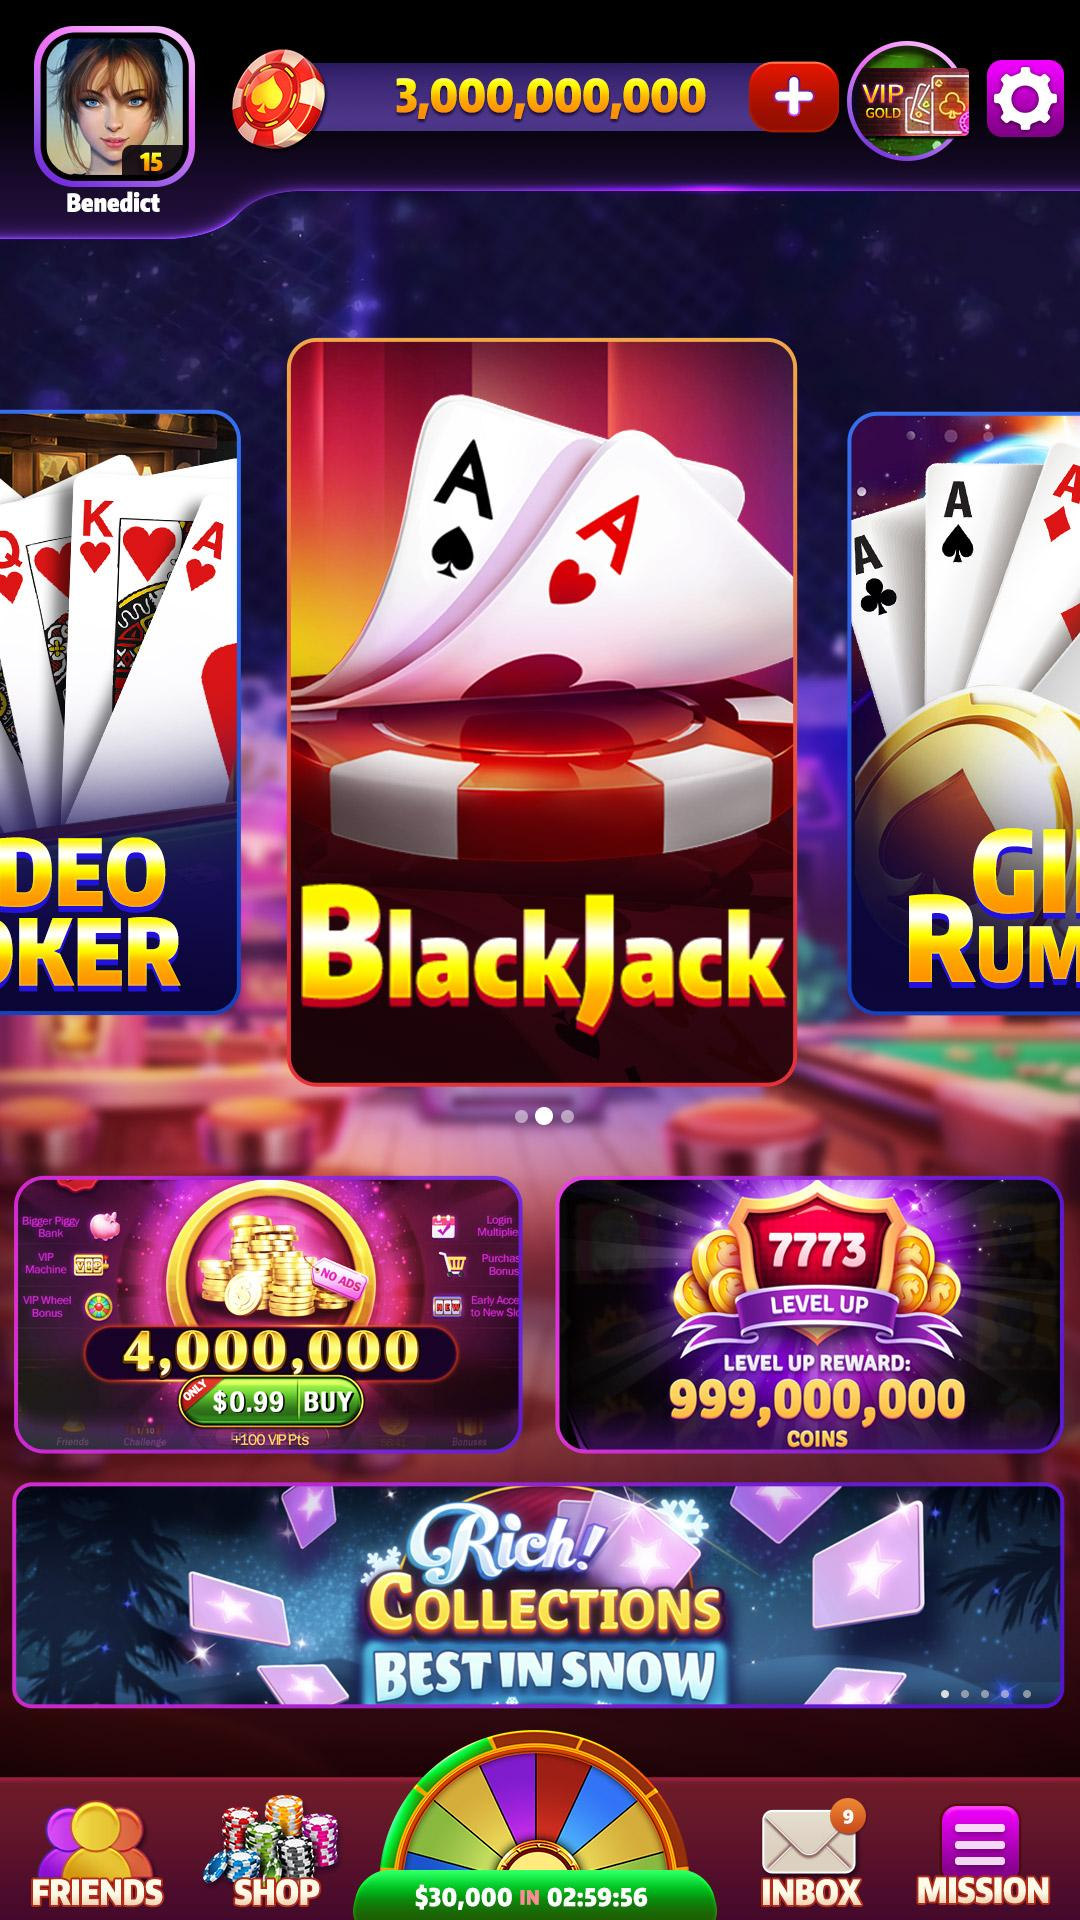 Blackjack Video Poker Triwin Poker Free Games For Android